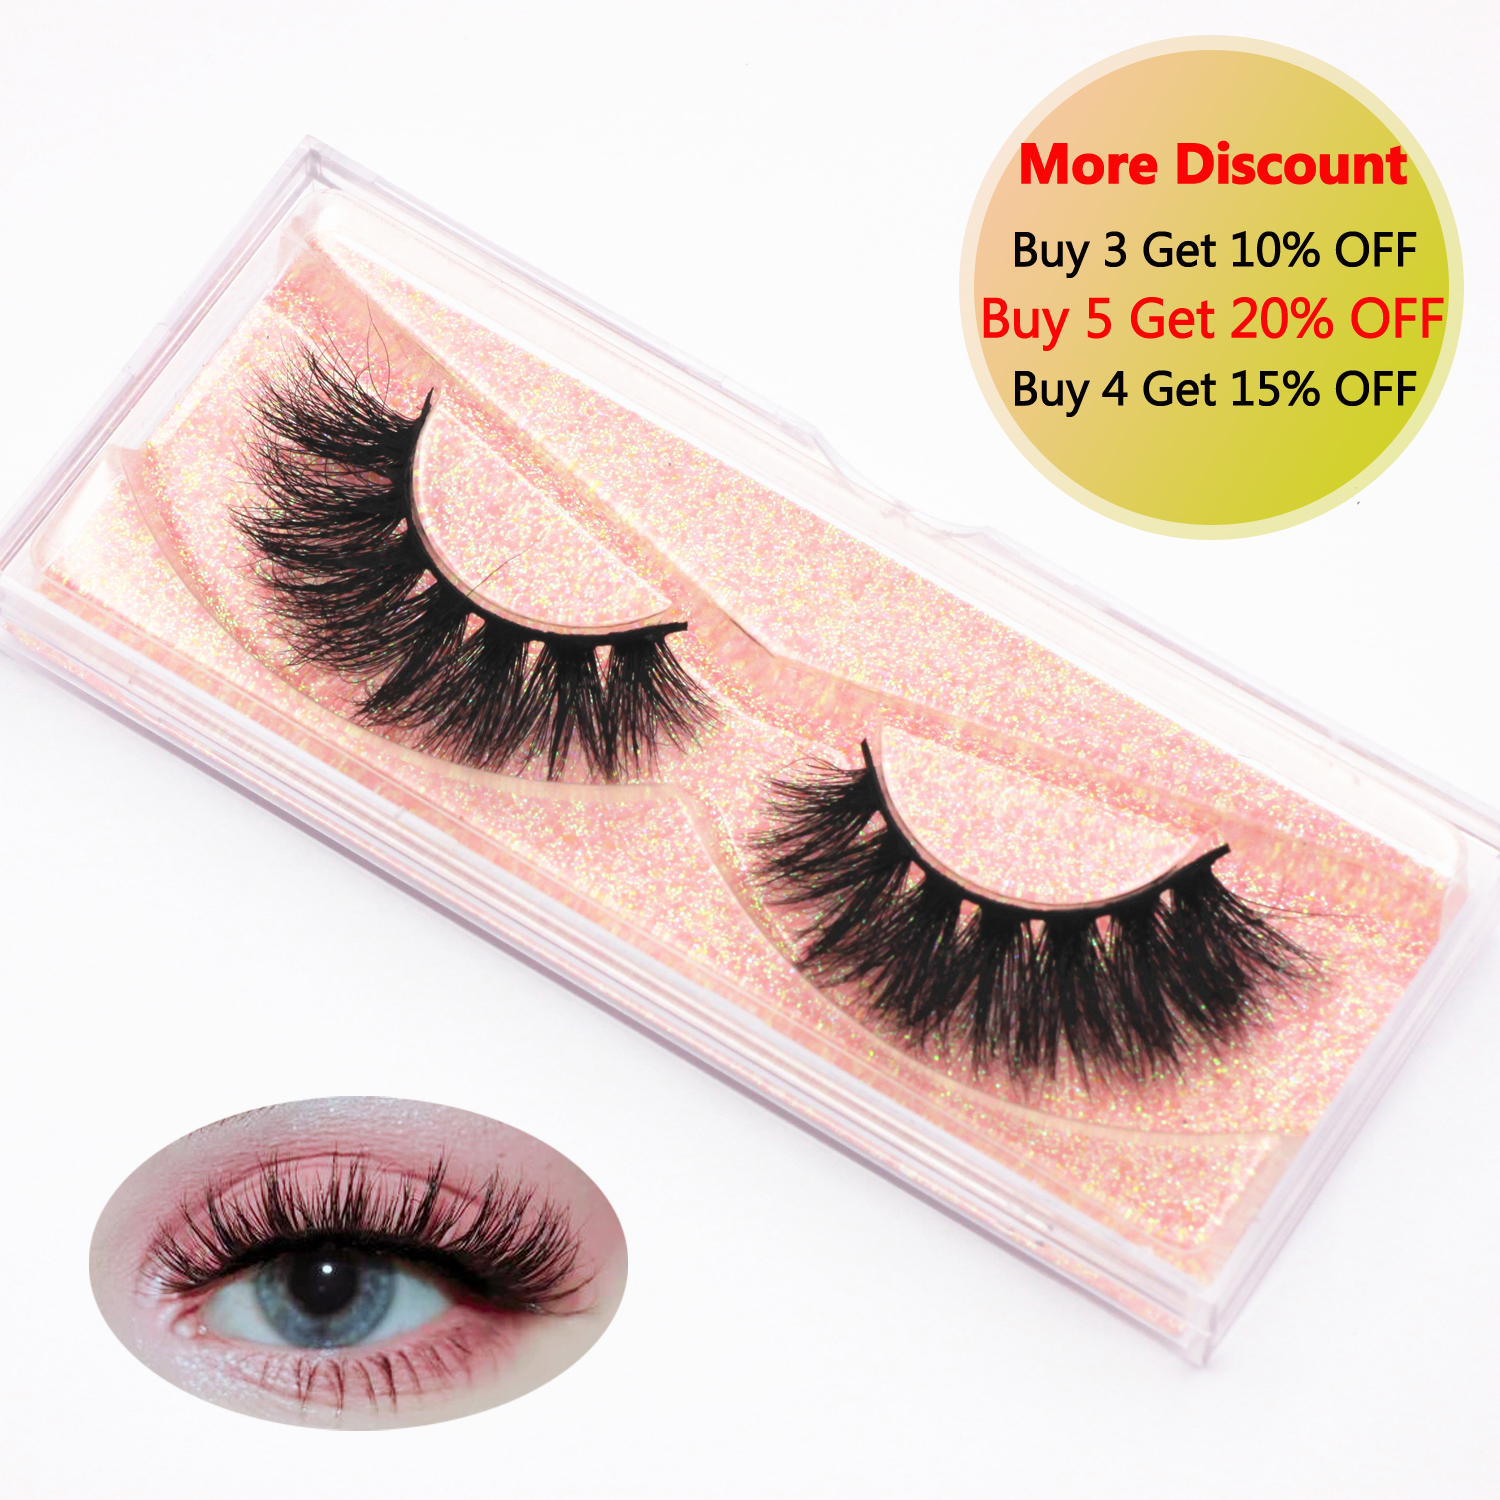 KEKEBAICHA Eyelashes Mink Lashes 3D Thick Dramatic Lashes Crisscross Soft Cute Eyelashes Cruelty Free Lashes Makeup E14 Lashes